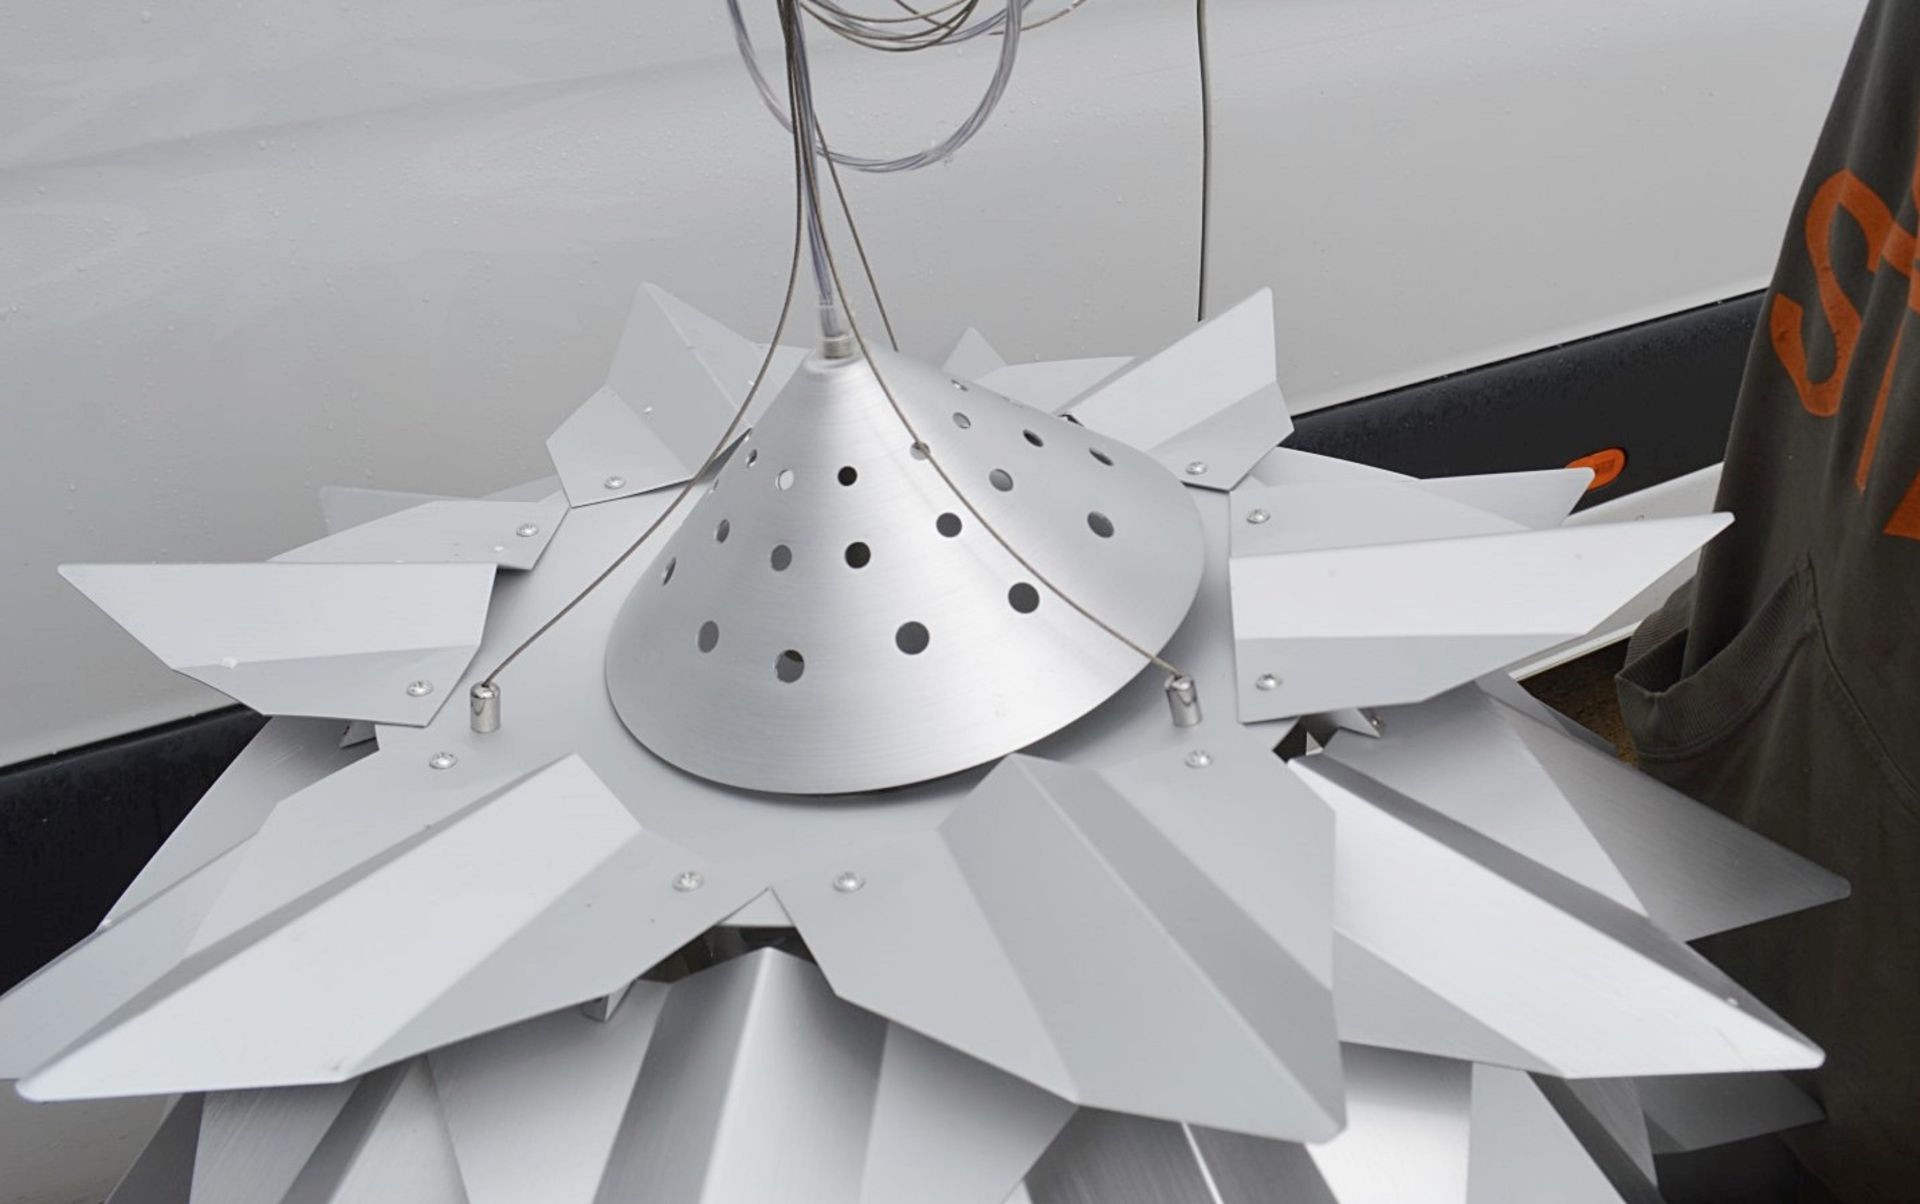 1 x 'Comosus' Statement Ceiling Pendant Light In Aluminium With A Brushed Silver Finish - Image 2 of 6